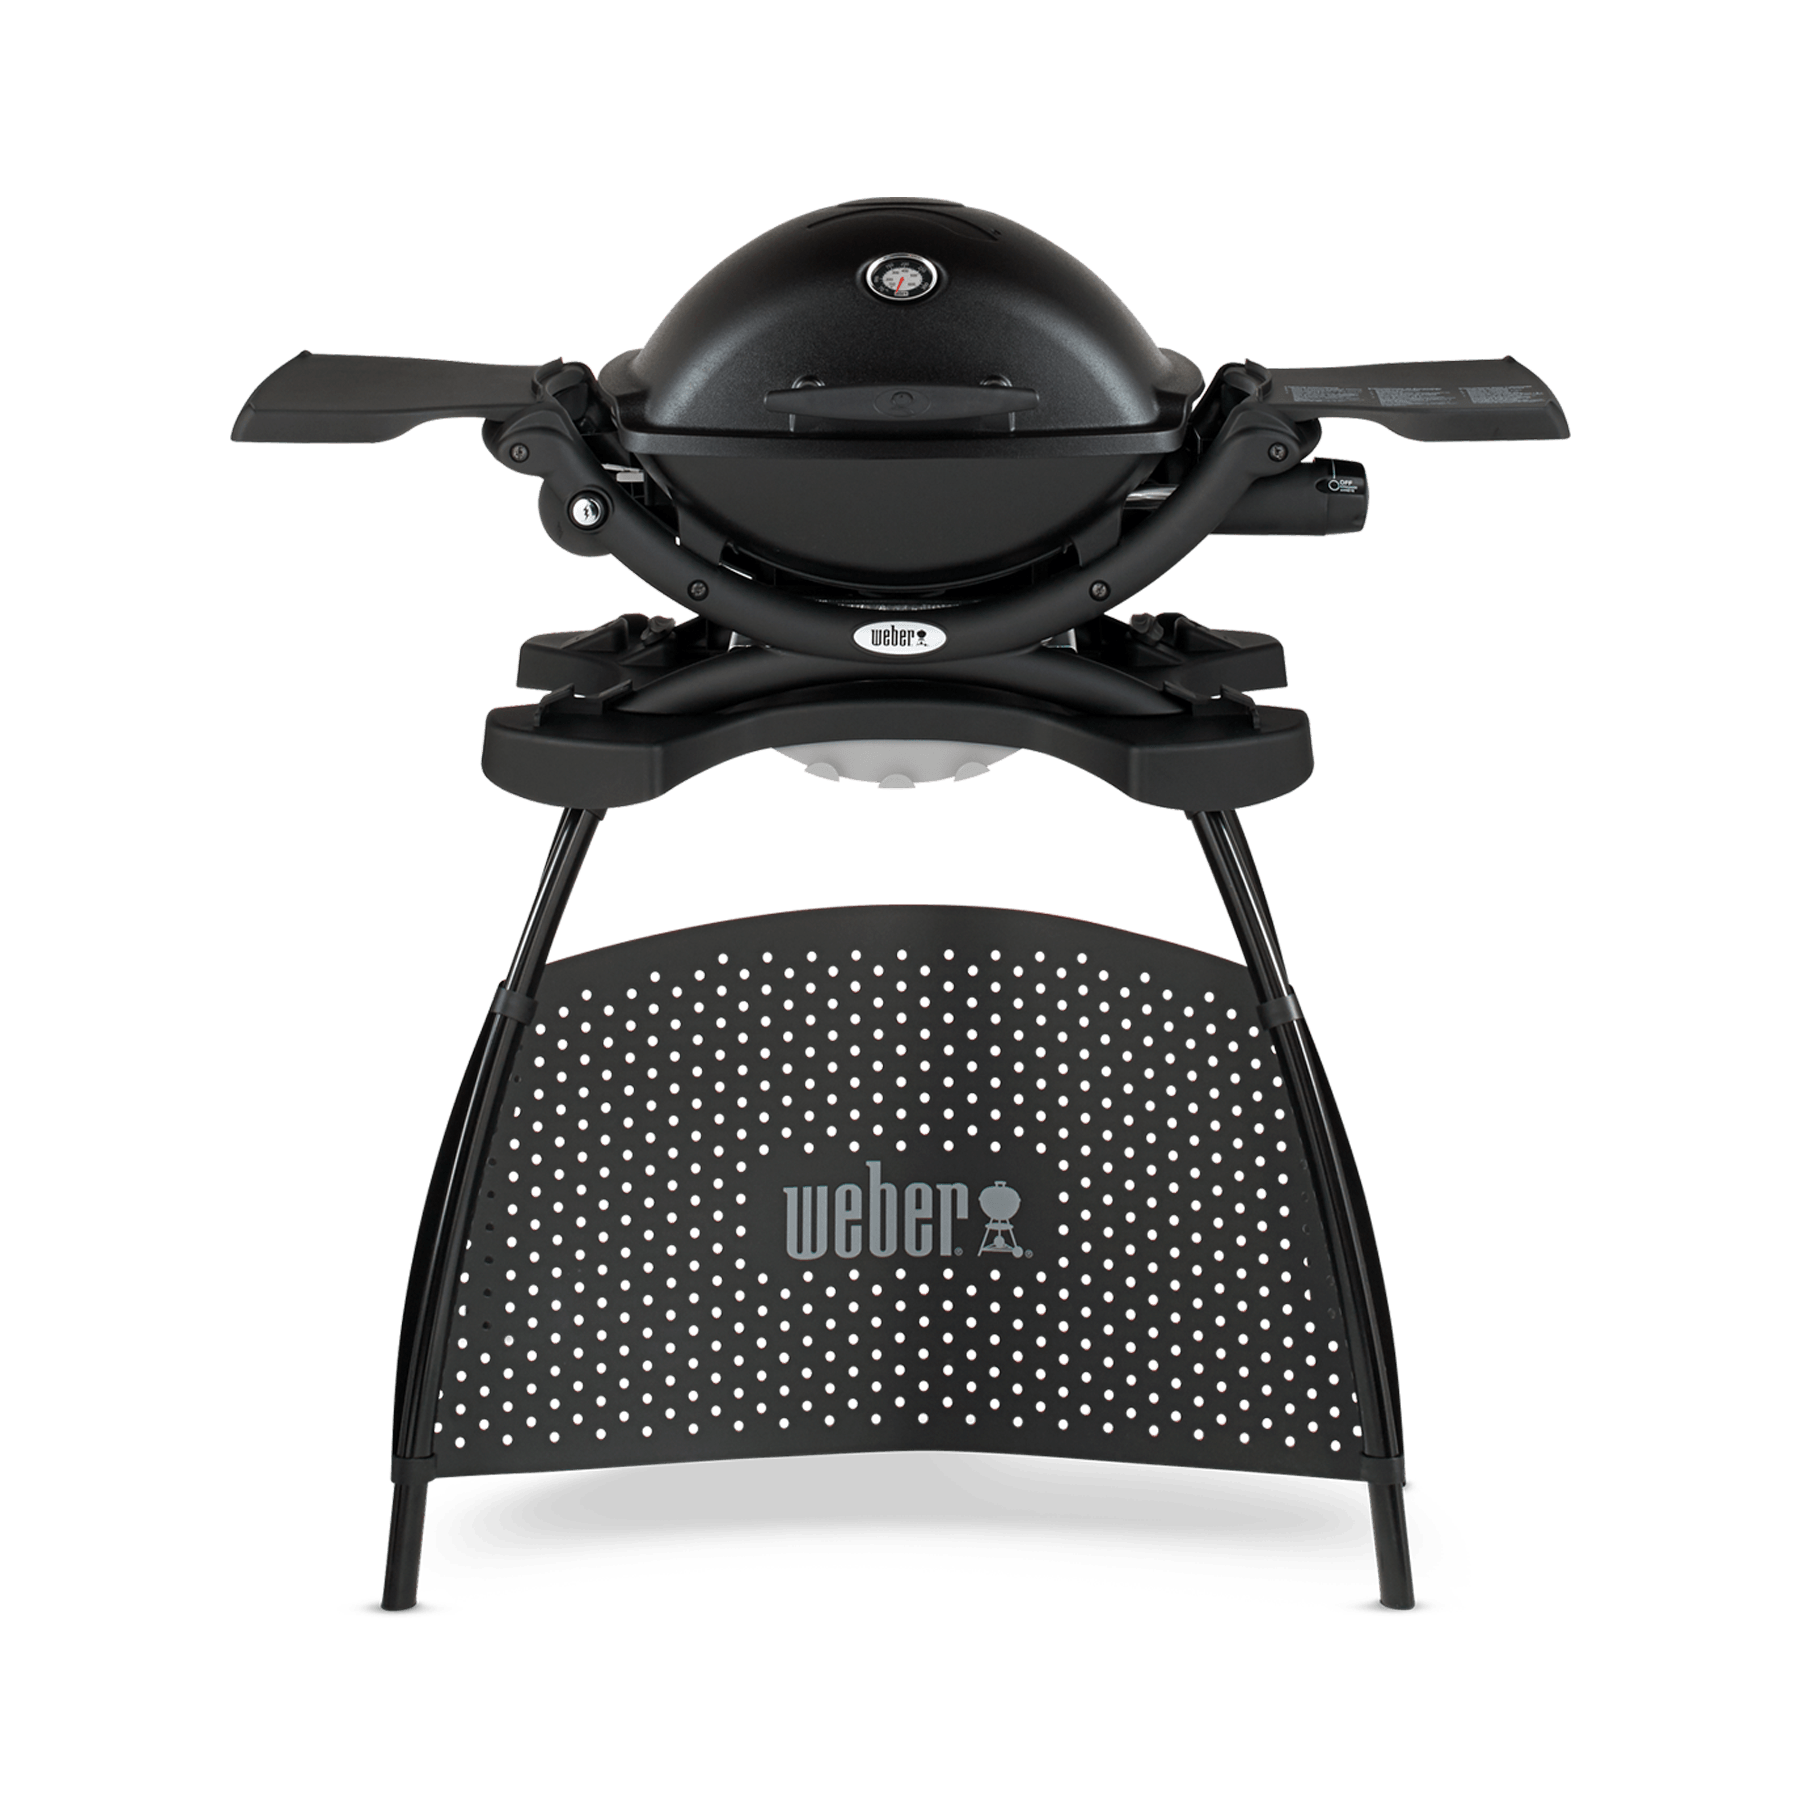 Weber Handleiding Weber Q 1200 Gasbarbecue Met Stand Q Serie Gasbarbecues